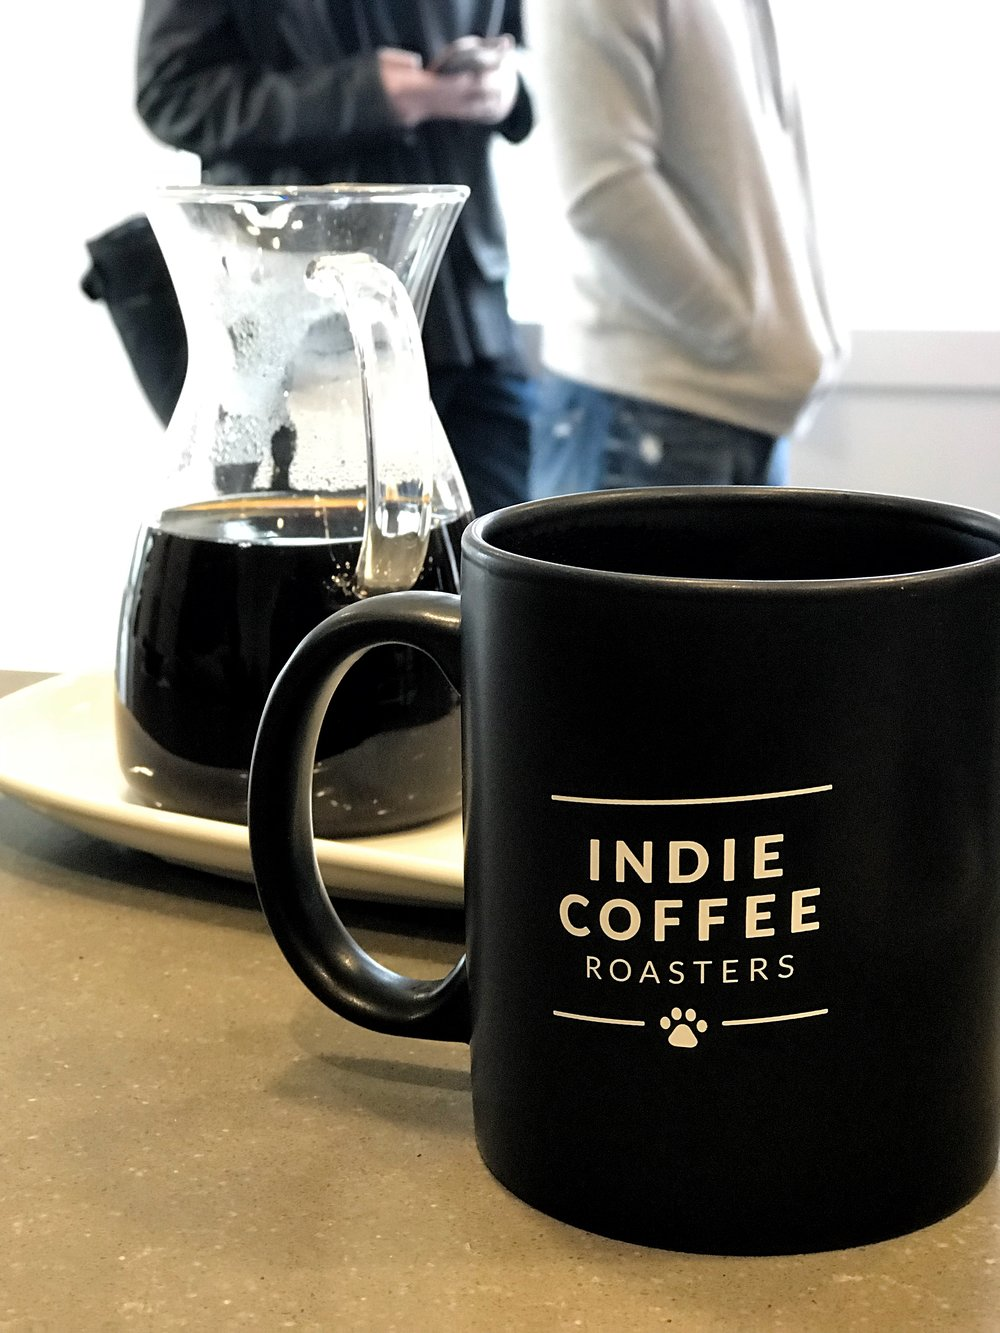 indie-coffee-roasters-1.JPG